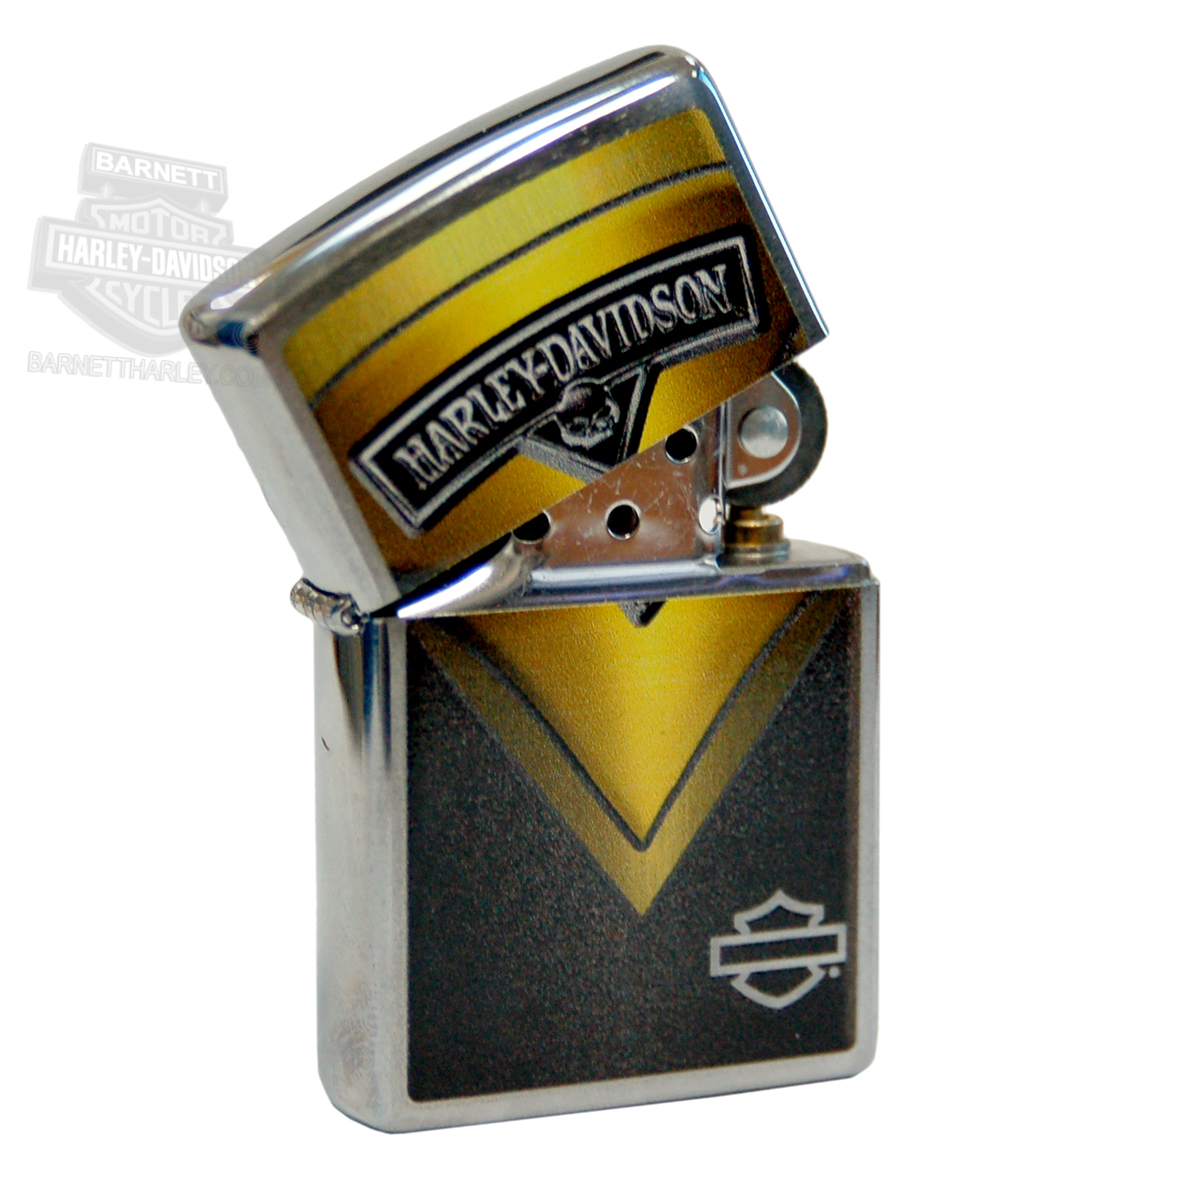 http://www.sieuthibinhan.com/zippo-harley-davidson-yellow-black-brushed-chrome-windproof